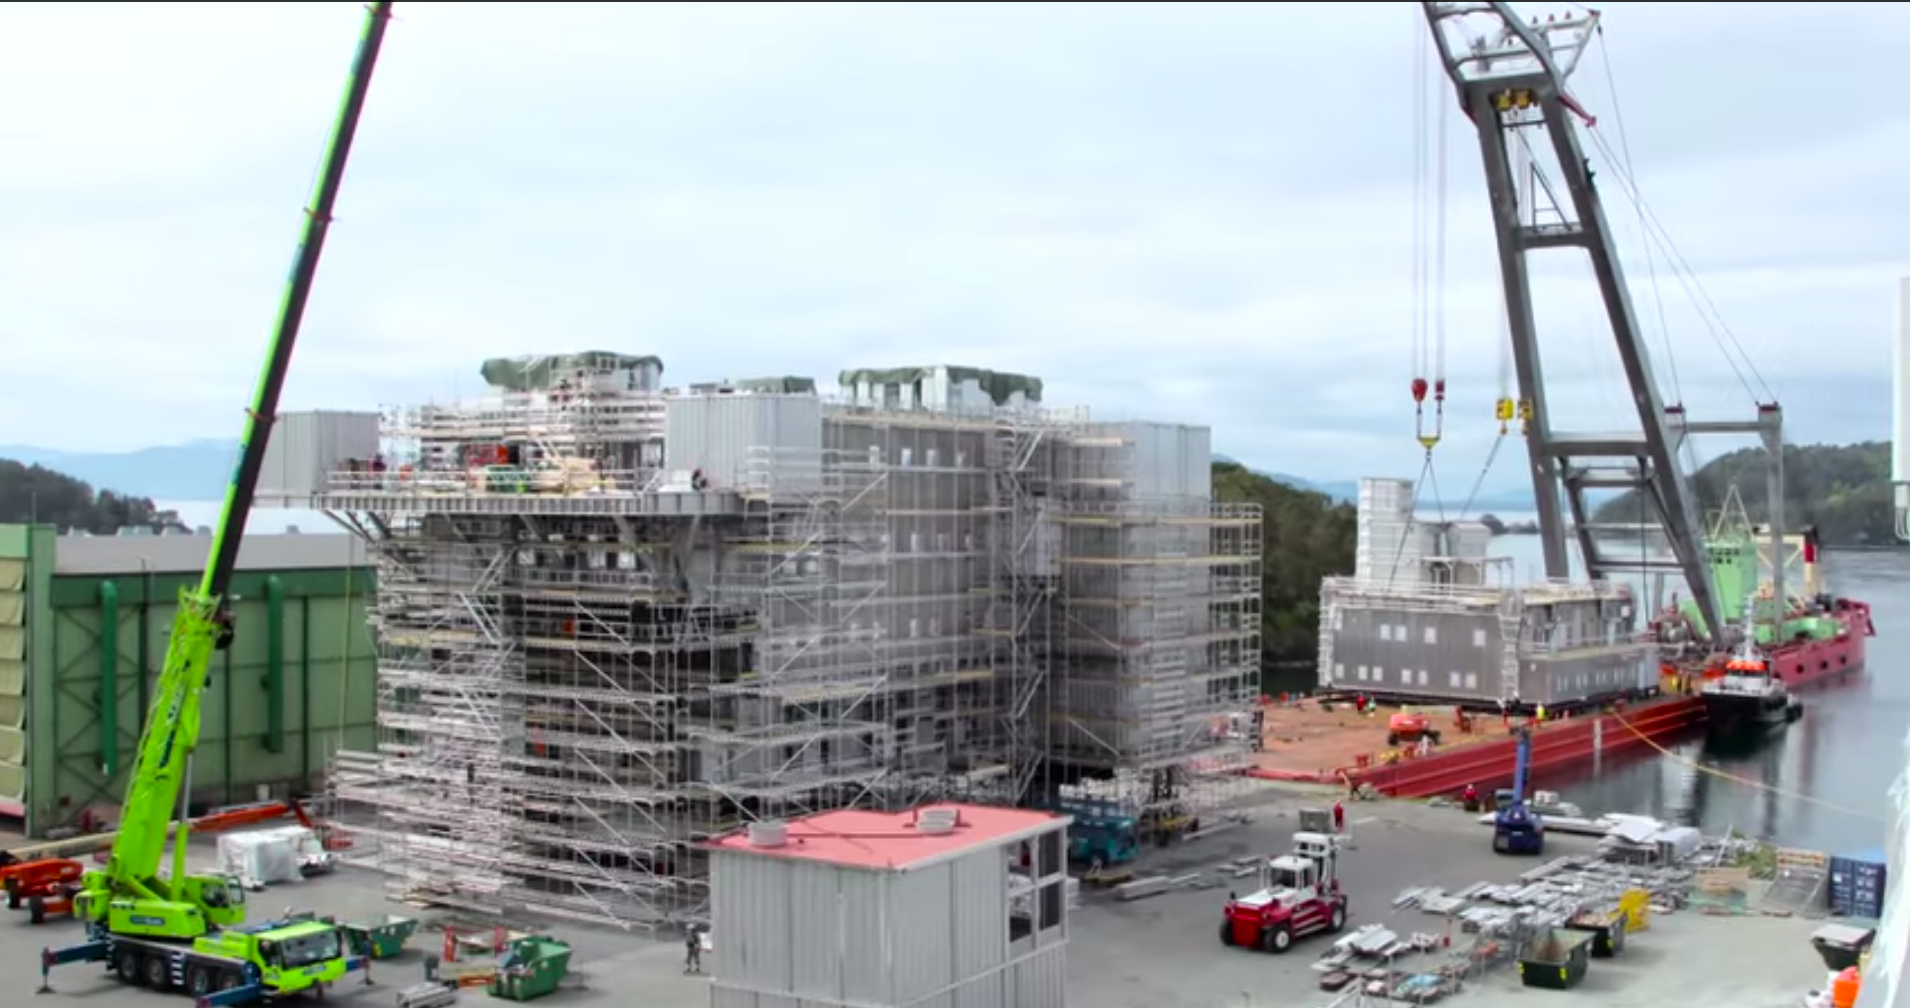 Video: Time-lapse shows Gina Krog living quarters being put in place